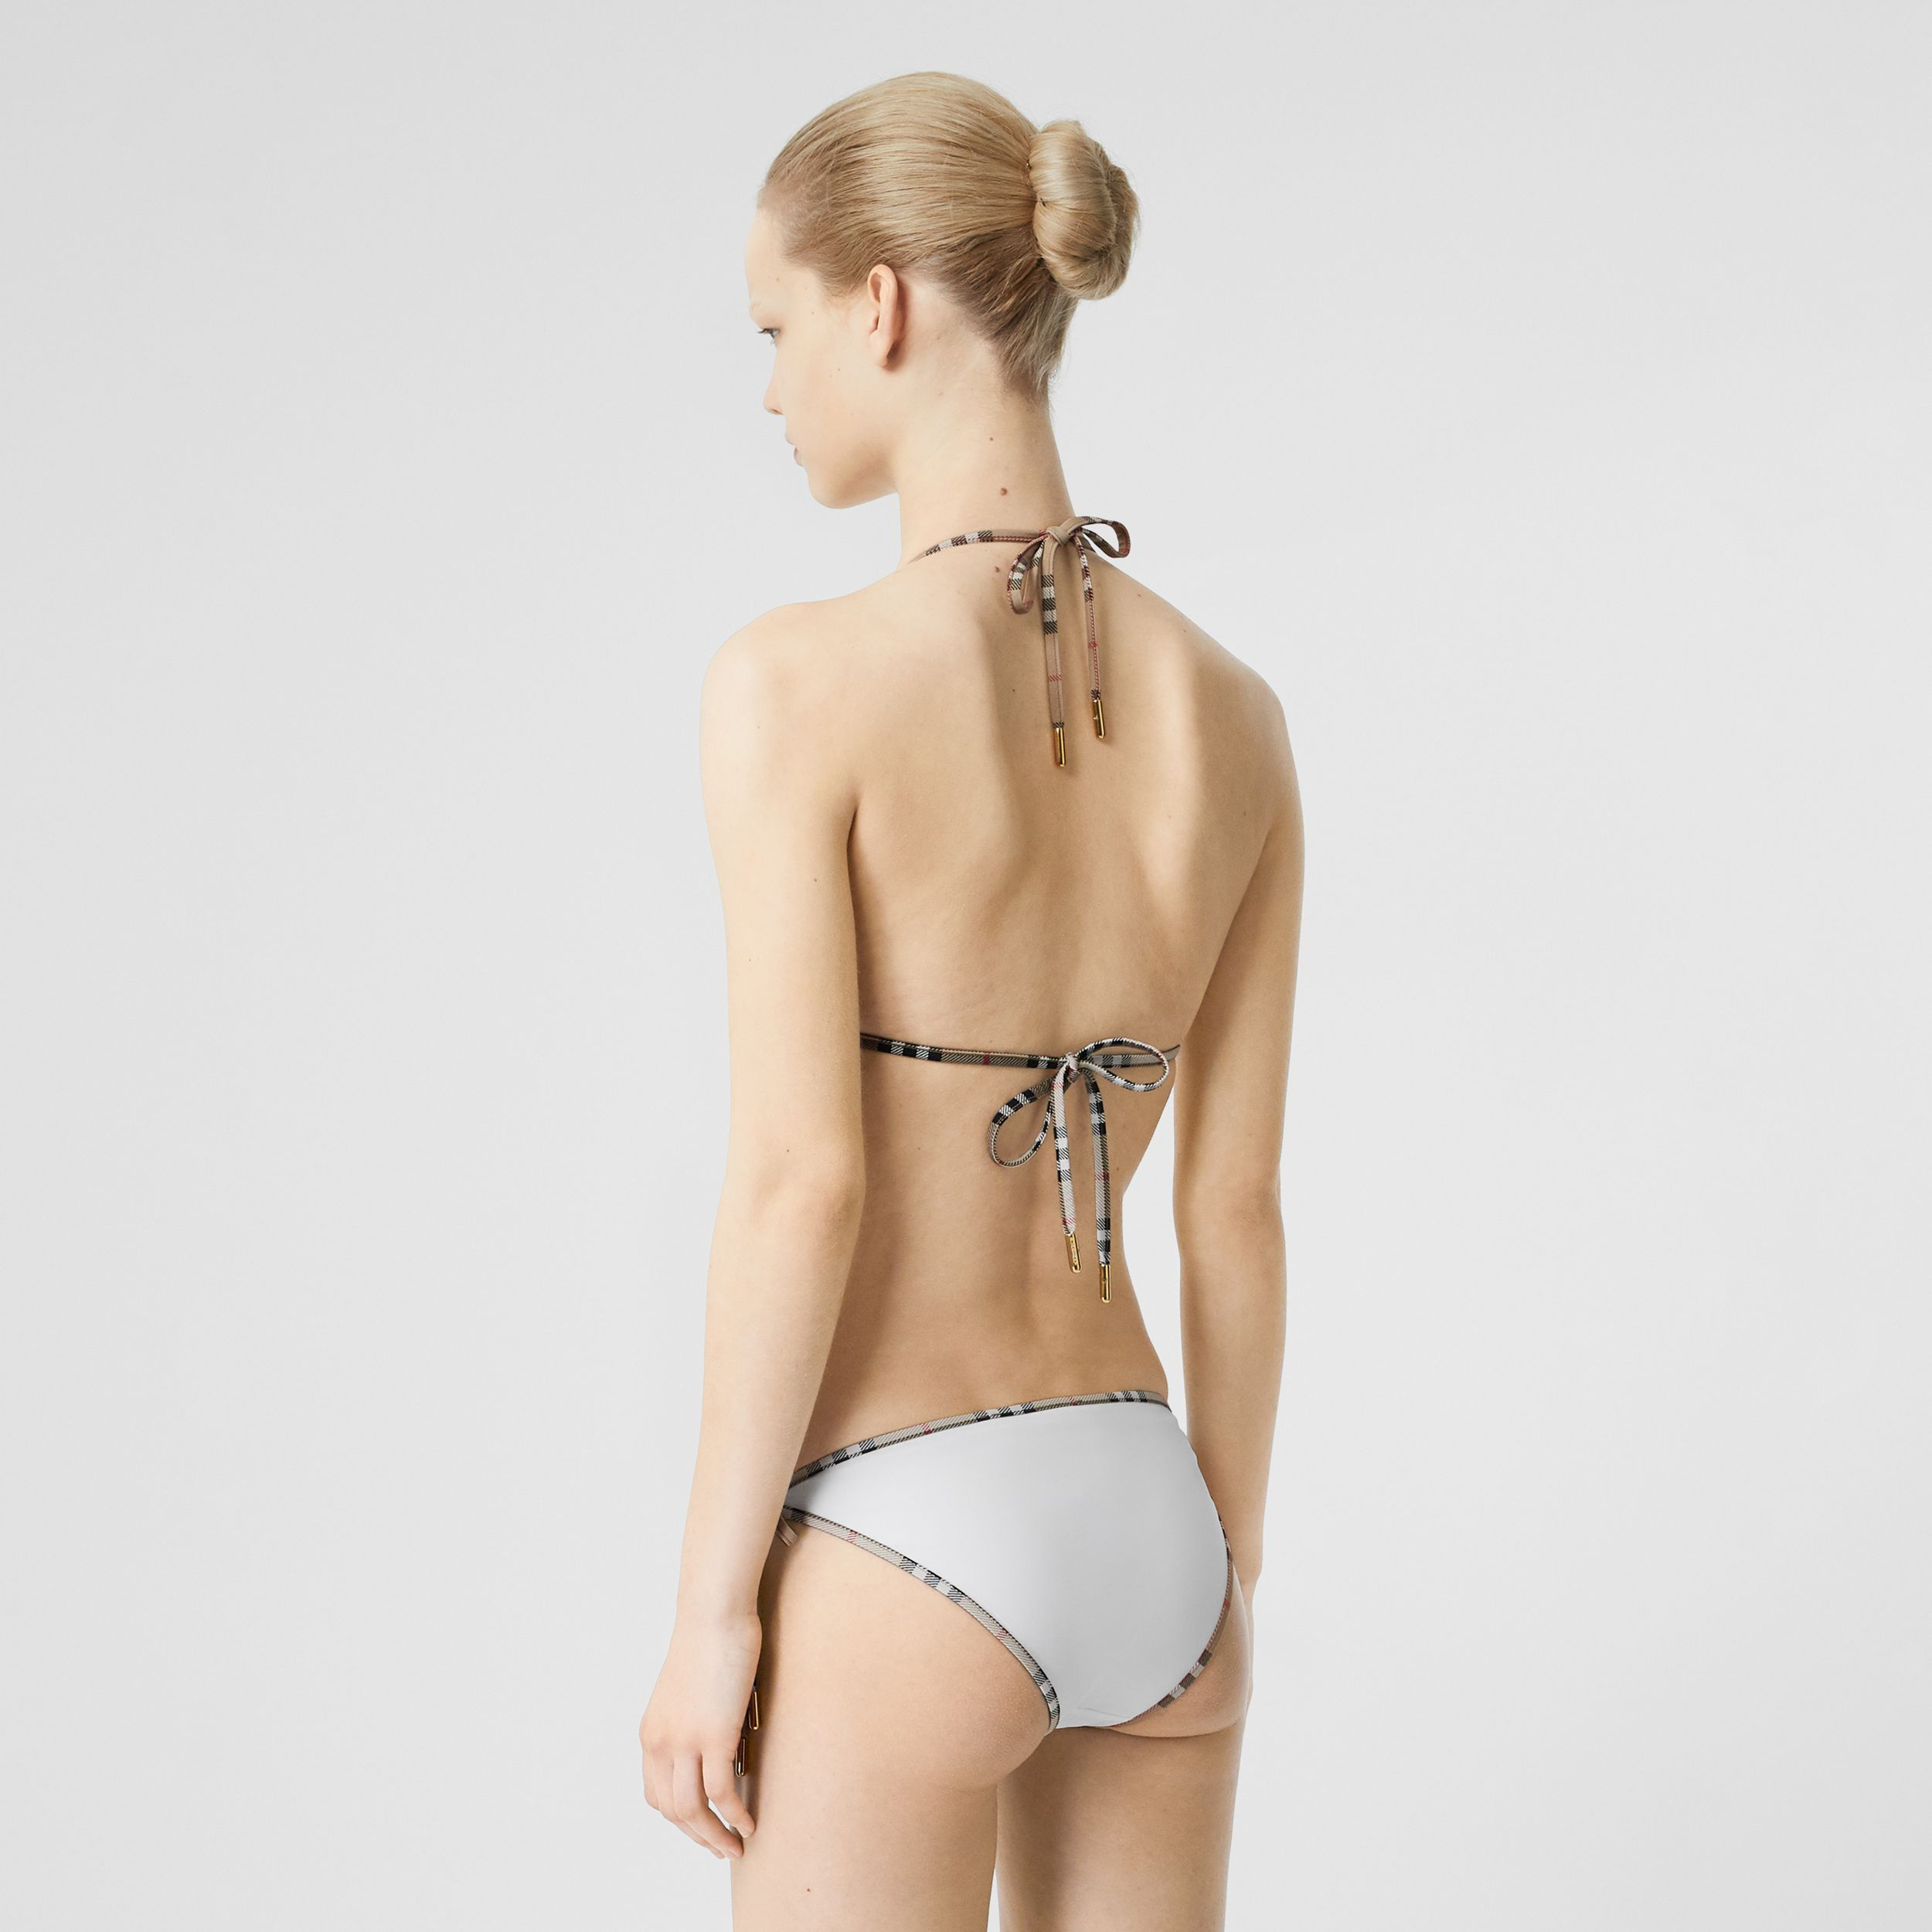 Vintage Check Detail Triangle Bikini in White - Women | Burberry Hong Kong S.A.R. - 2